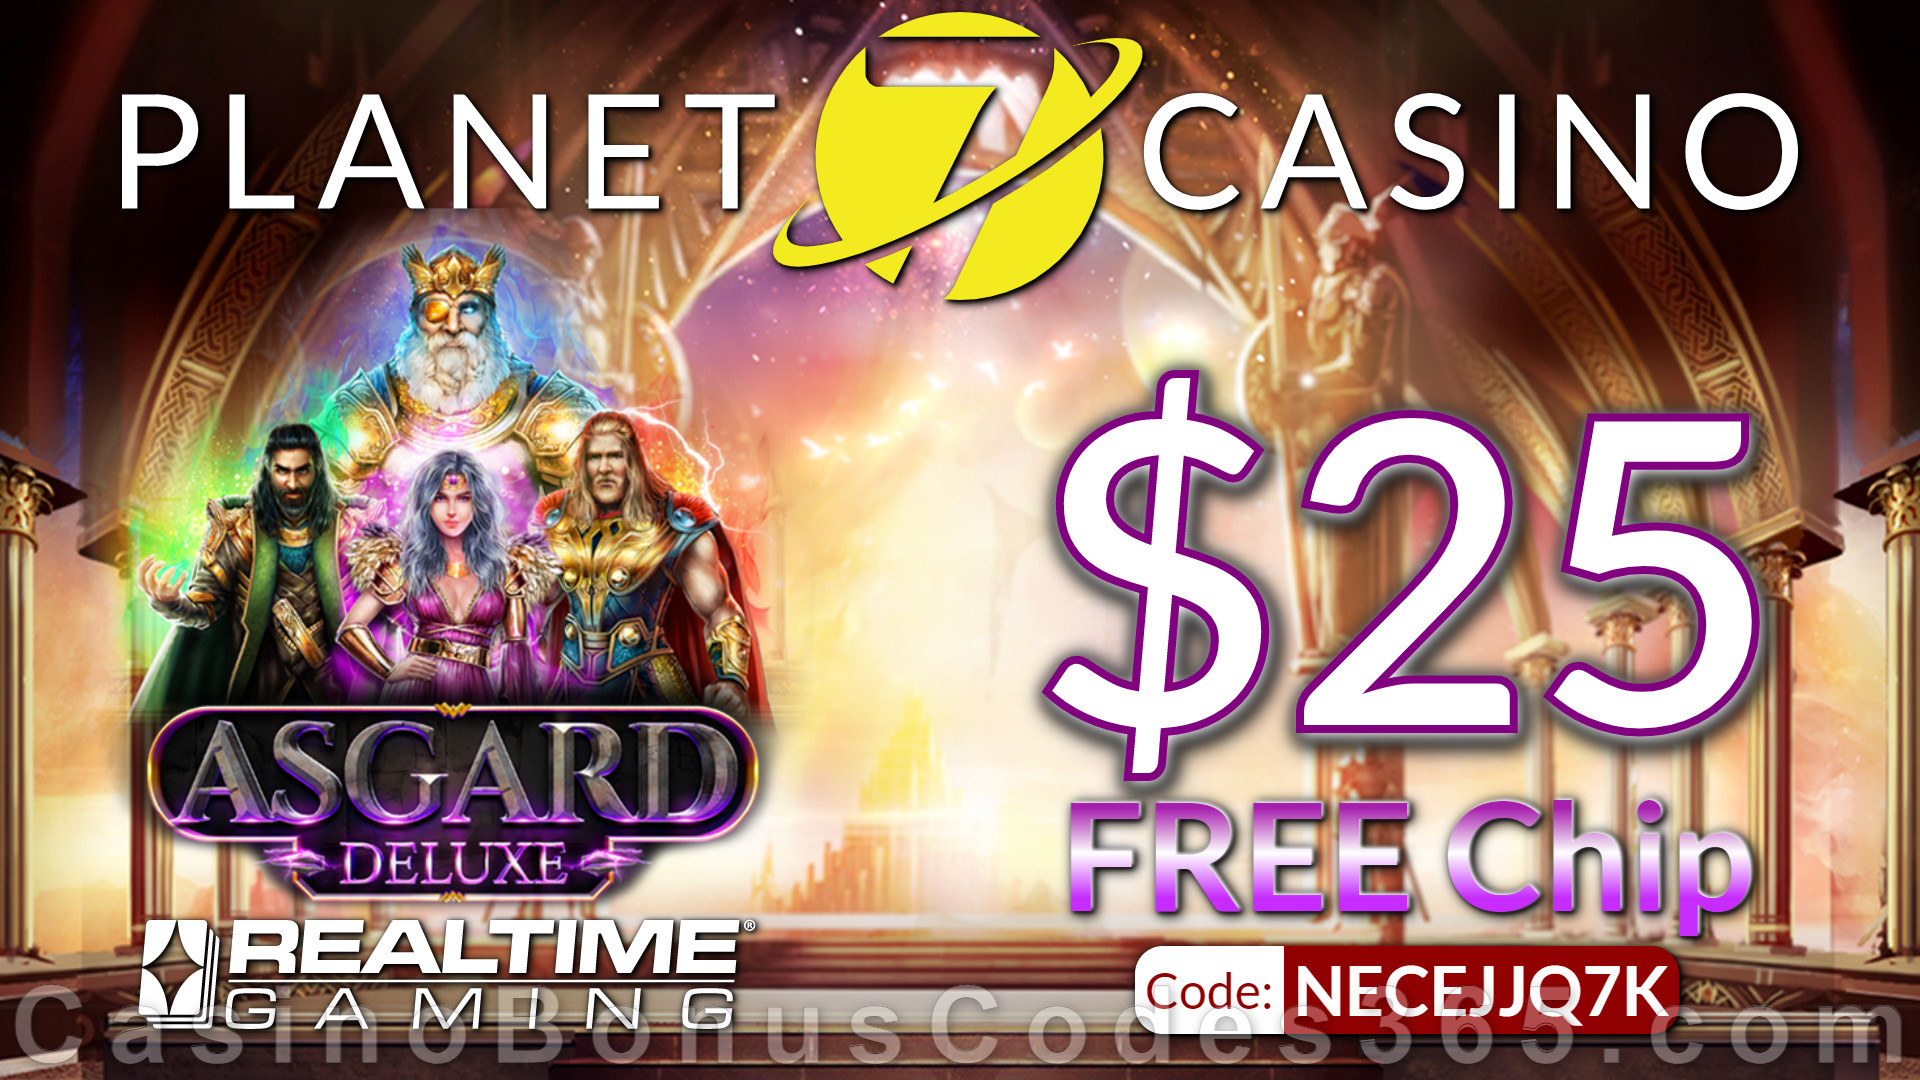 Planet 7 Casino New RTG Game Asgard Deluxe $25 No Deposit FREE Chip Special Deal